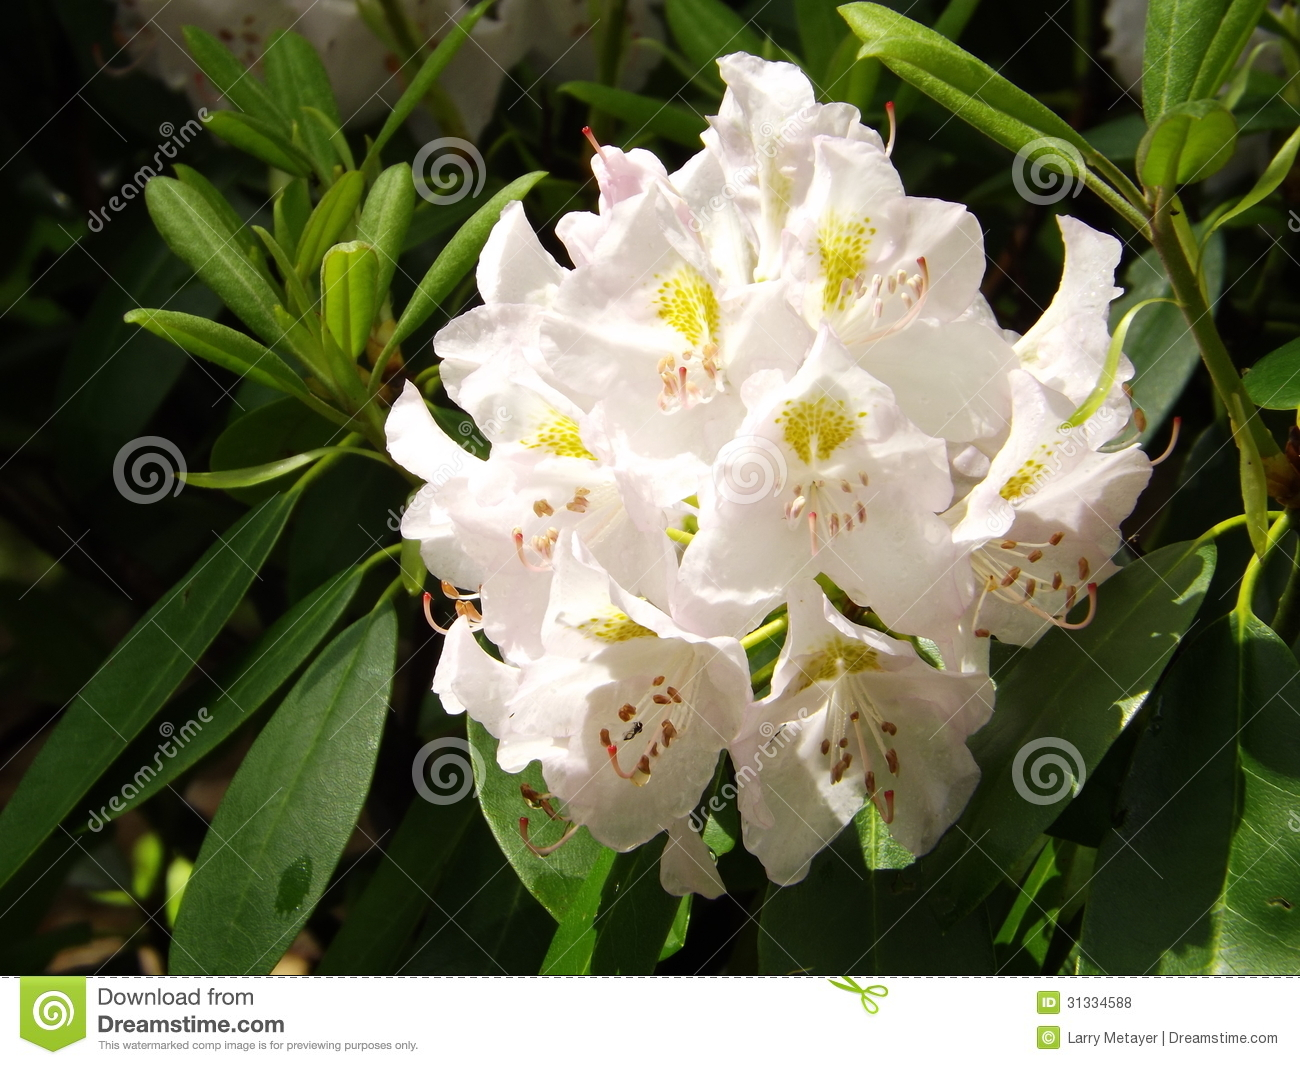 Great Rhododendron - Rhododendron maximum